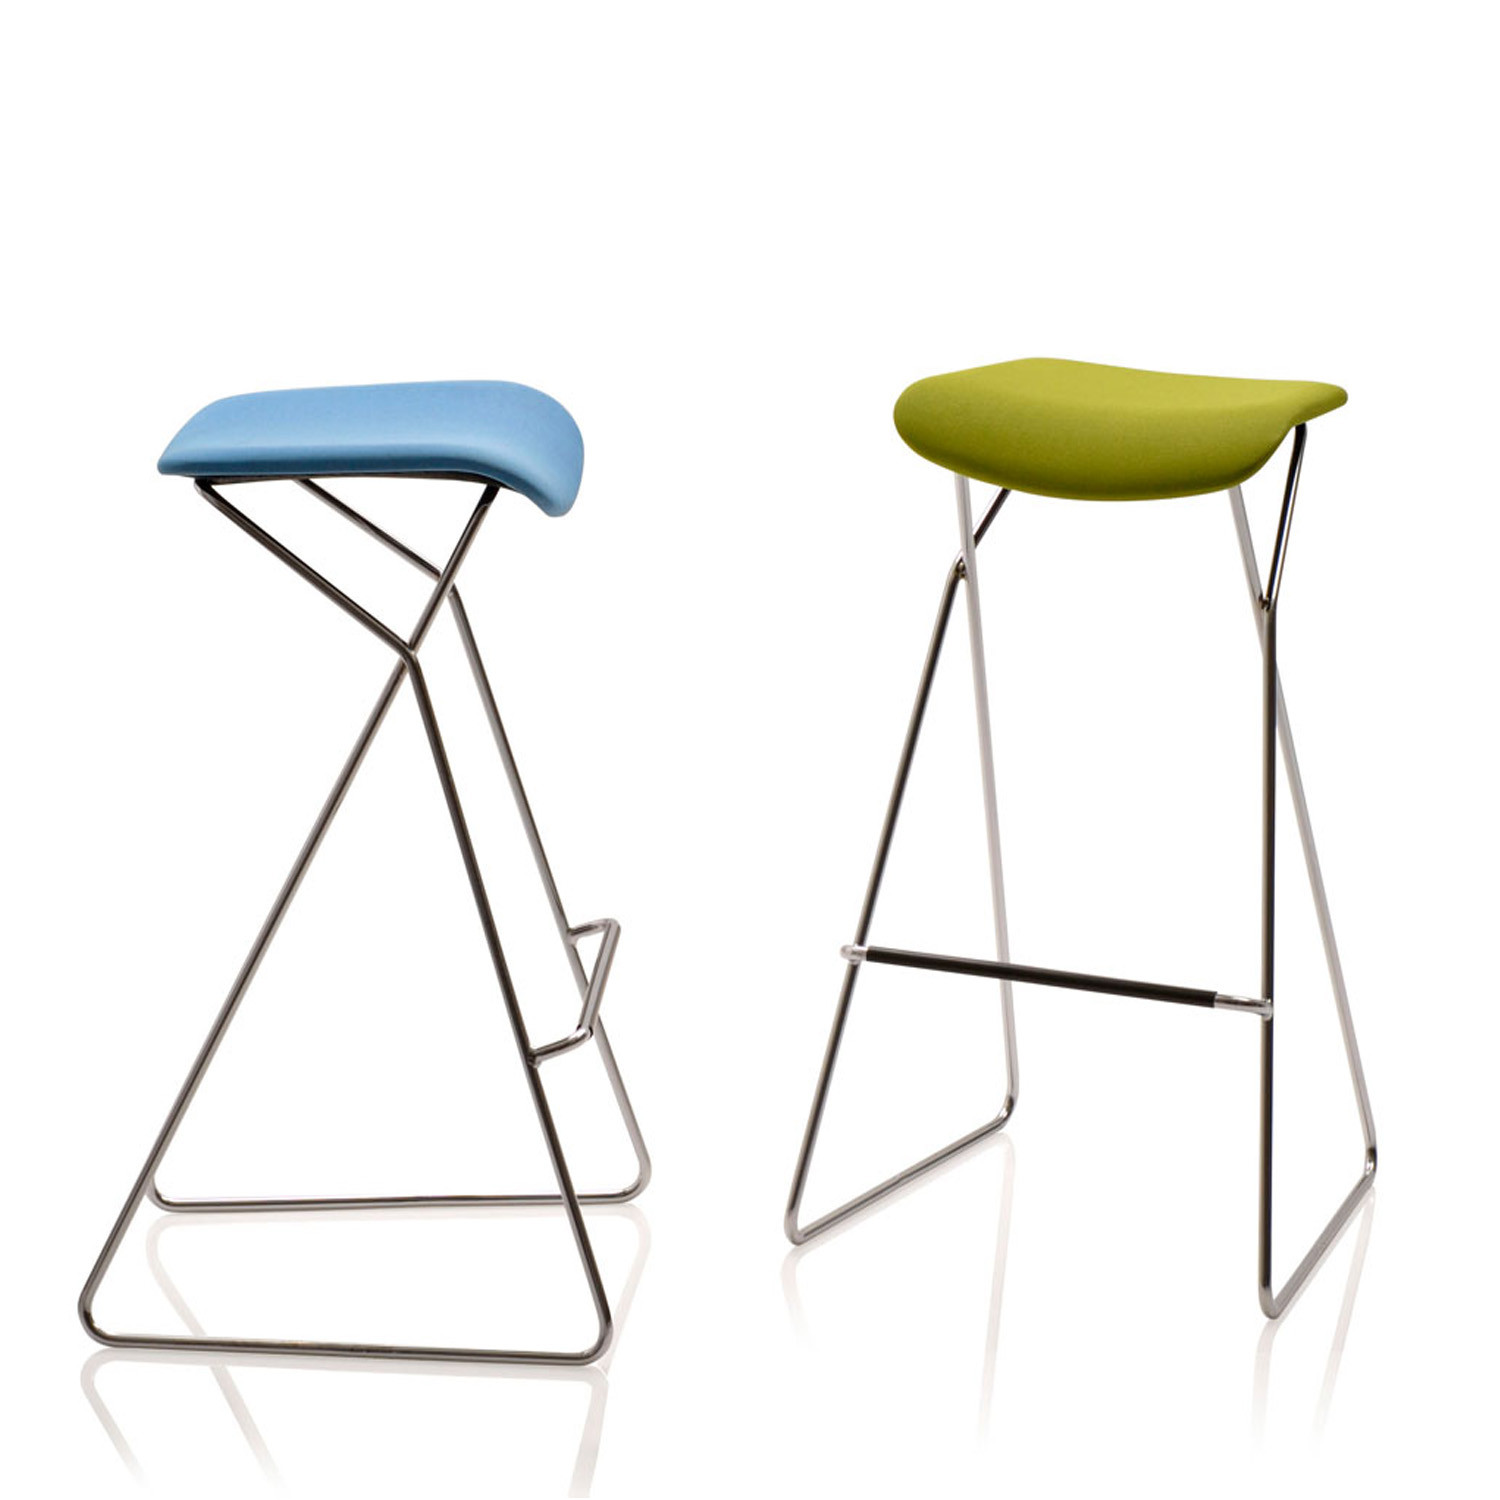 Tide Stool Bar Stools Orangebox : tide web 01 from www.apresfurniture.co.uk size 1500 x 1500 jpeg 113kB